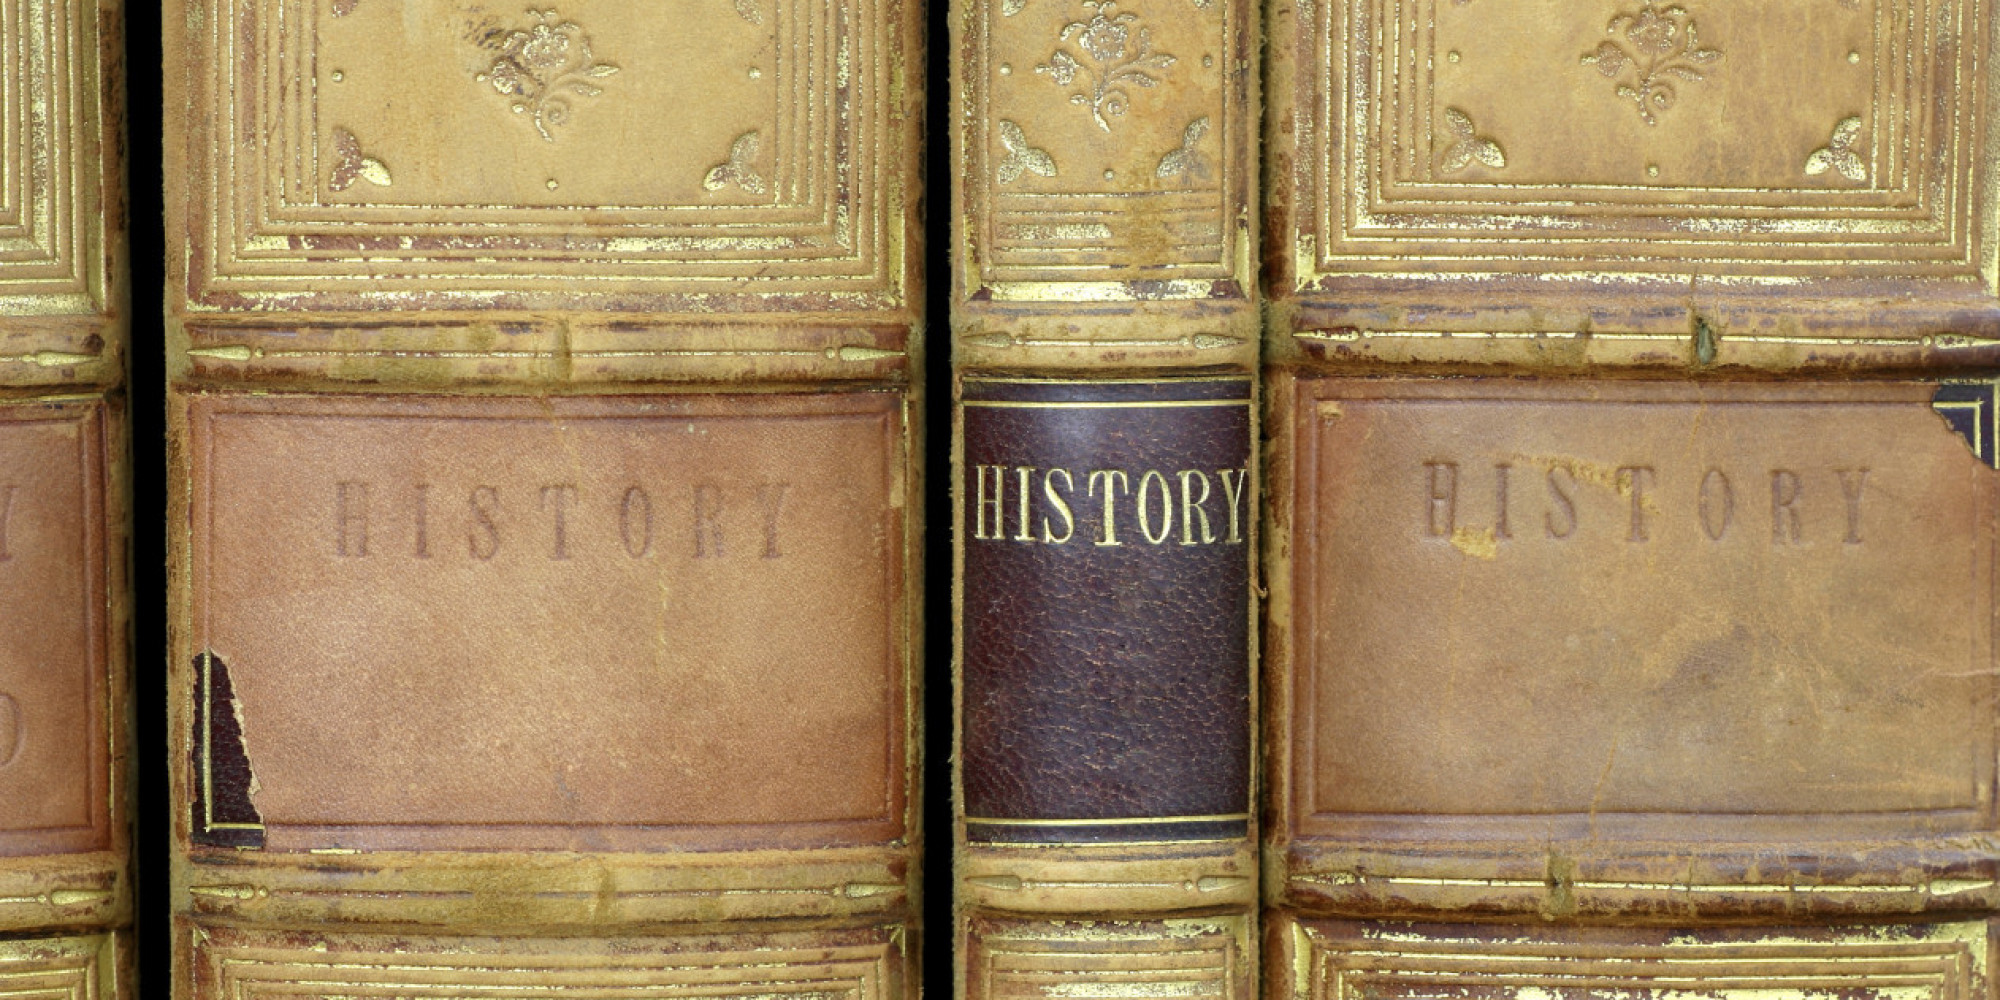 20 Things Only History Students Will Understand